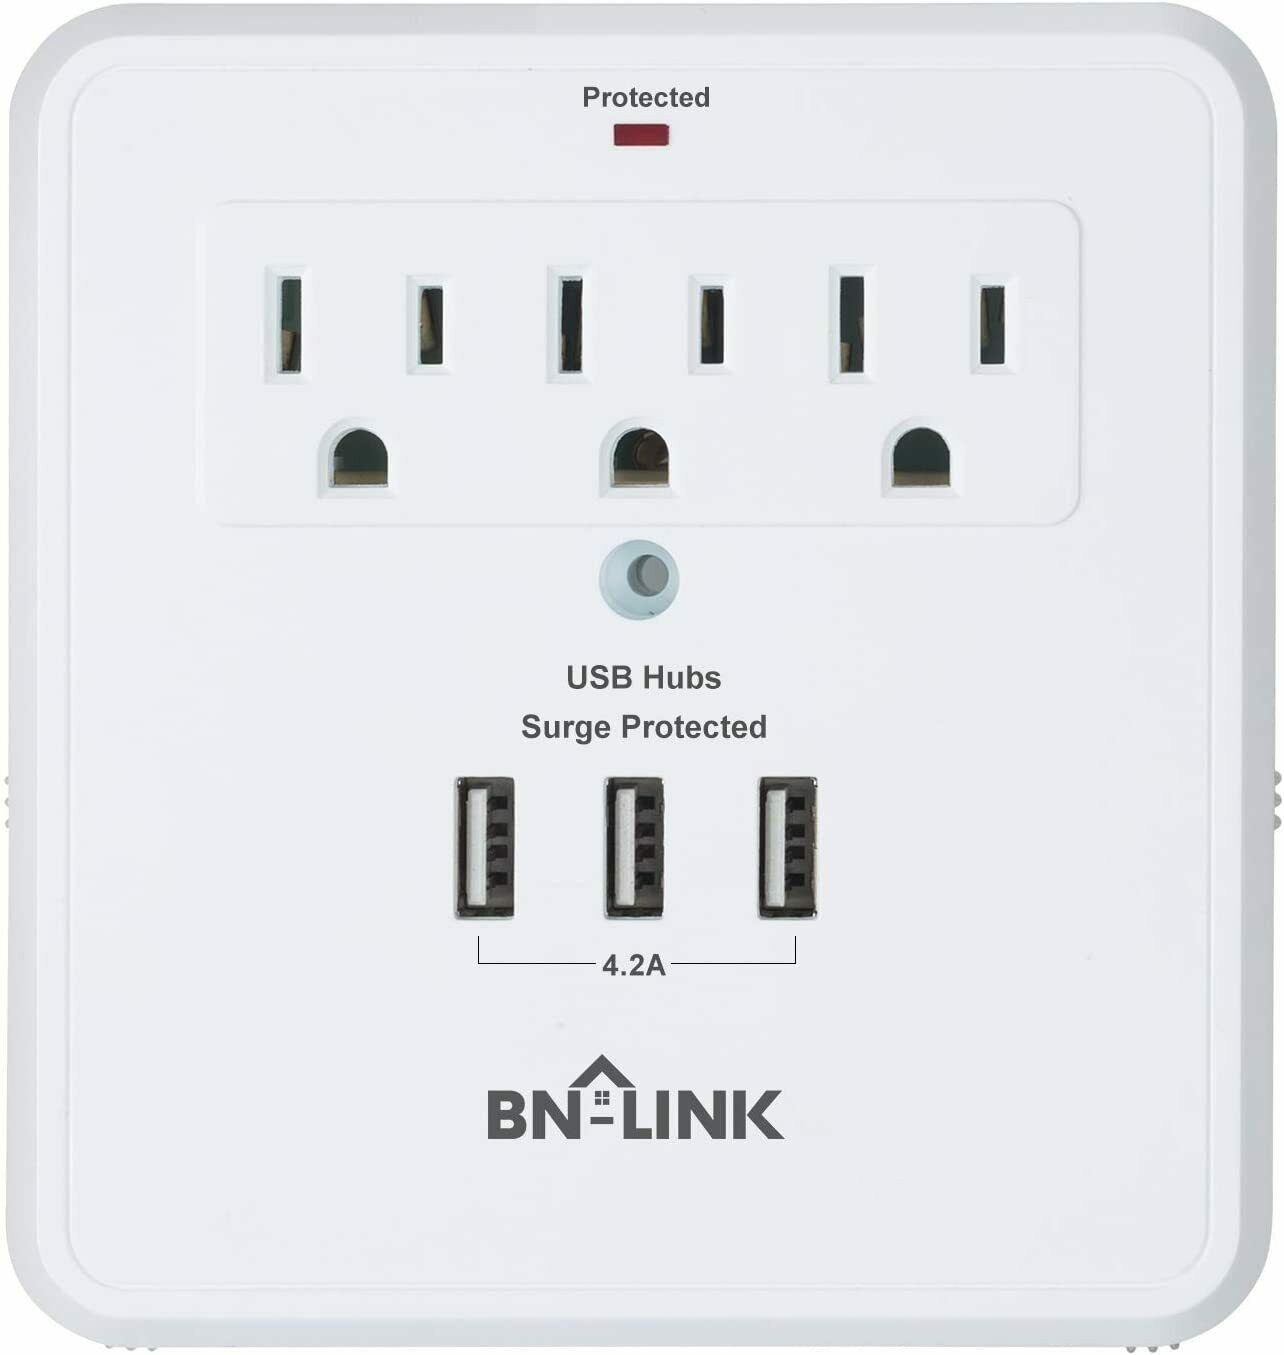 Century Wall Mount Surge Protector With Triple Usb Charging Ports 3 Cooper Wiring Devices 15 Amp Decorator Electrical Outlet Outlets 1 Of 2free Shipping